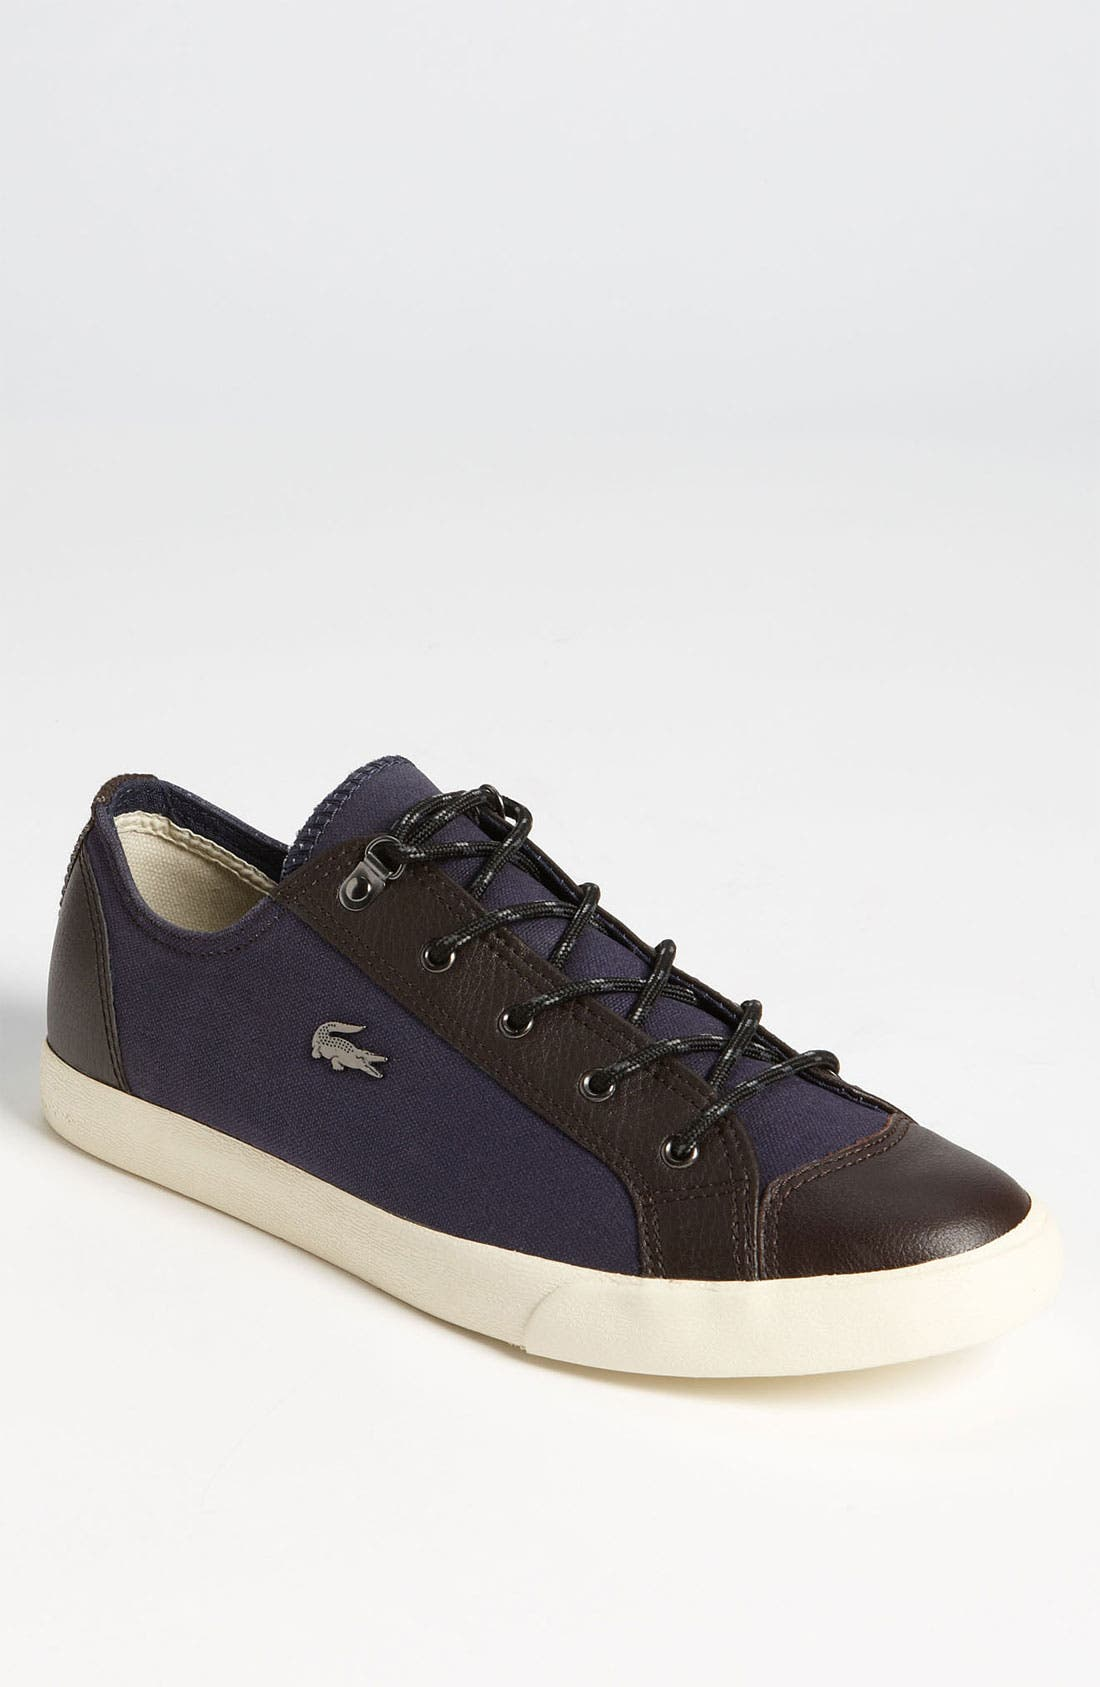 Main Image - Lacoste 'L27 Outdoor 2' Sneaker